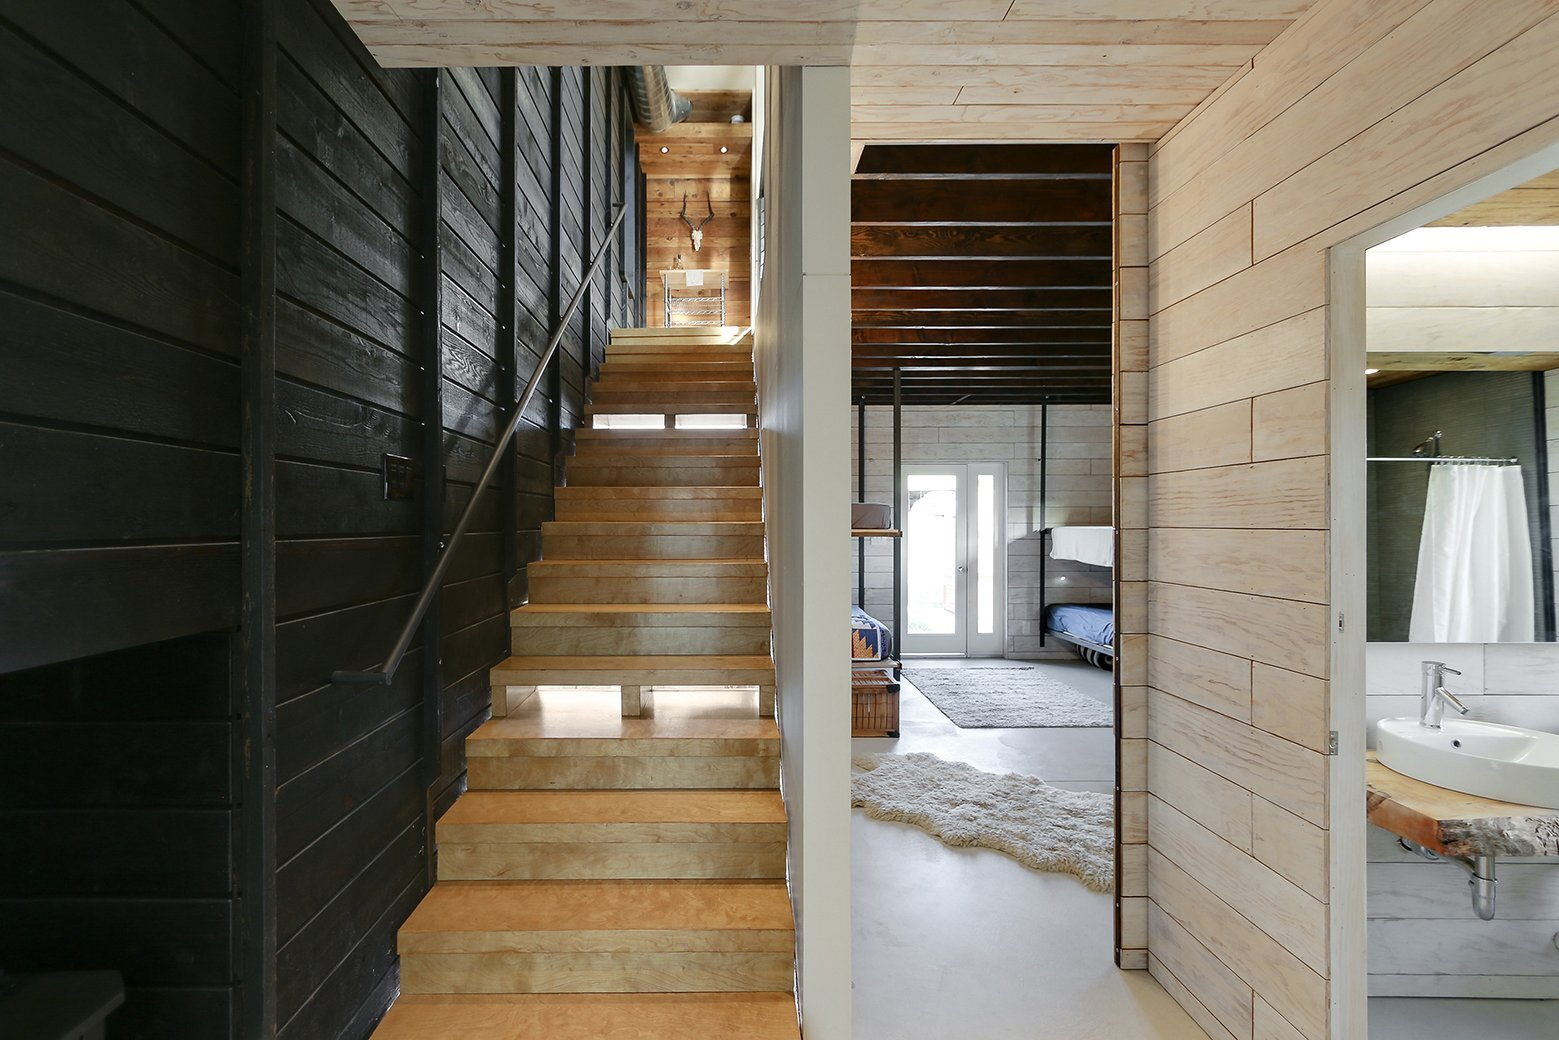 510 Cabin - Small House - Hunter Leggitt Studio - California - Staircase - Humble Homes